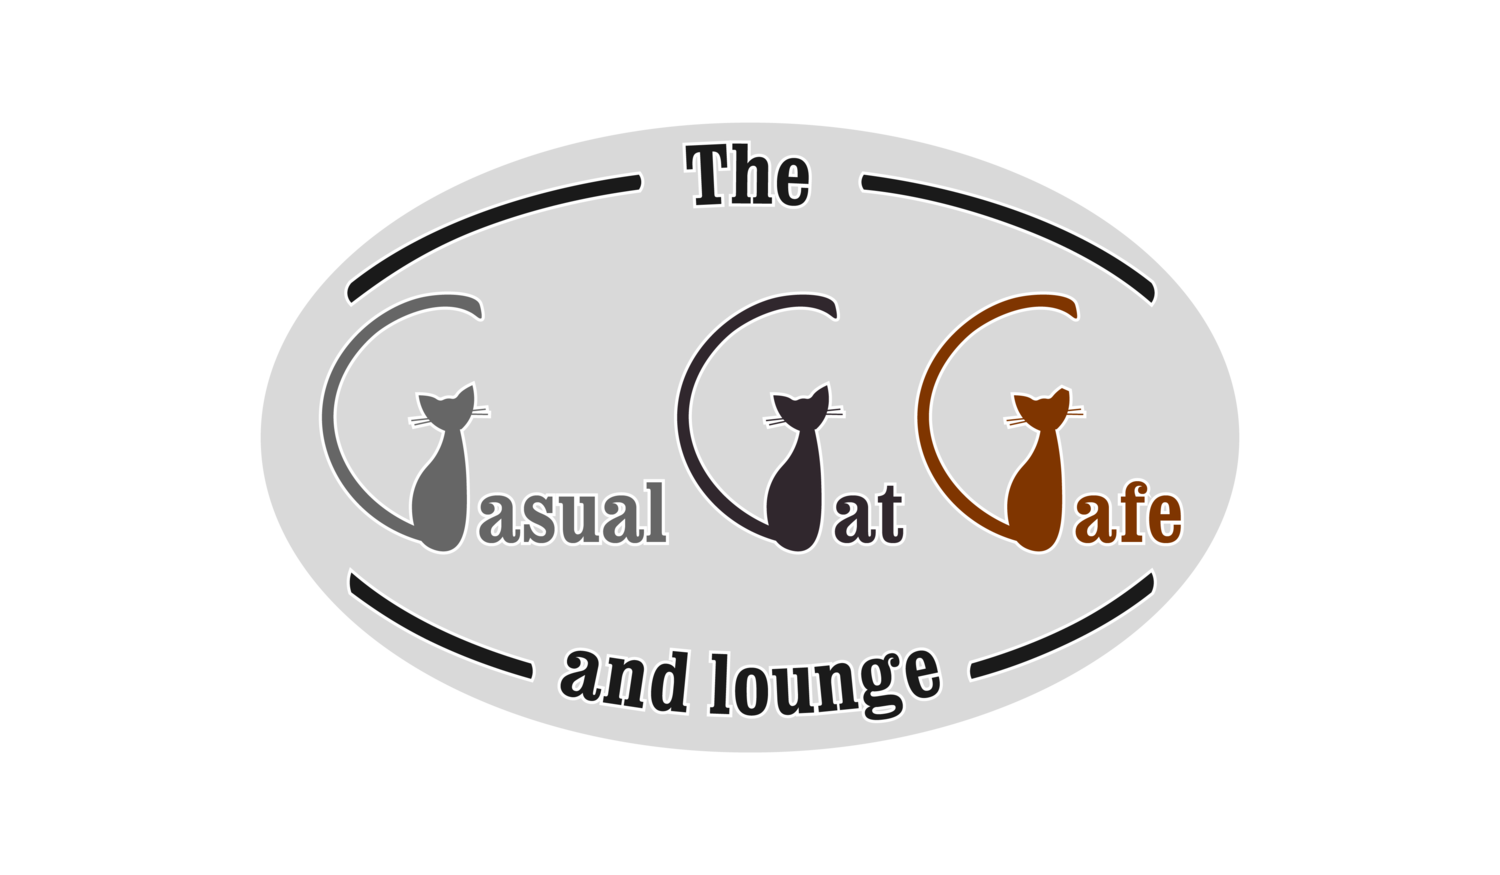 TheCasualCatCafe